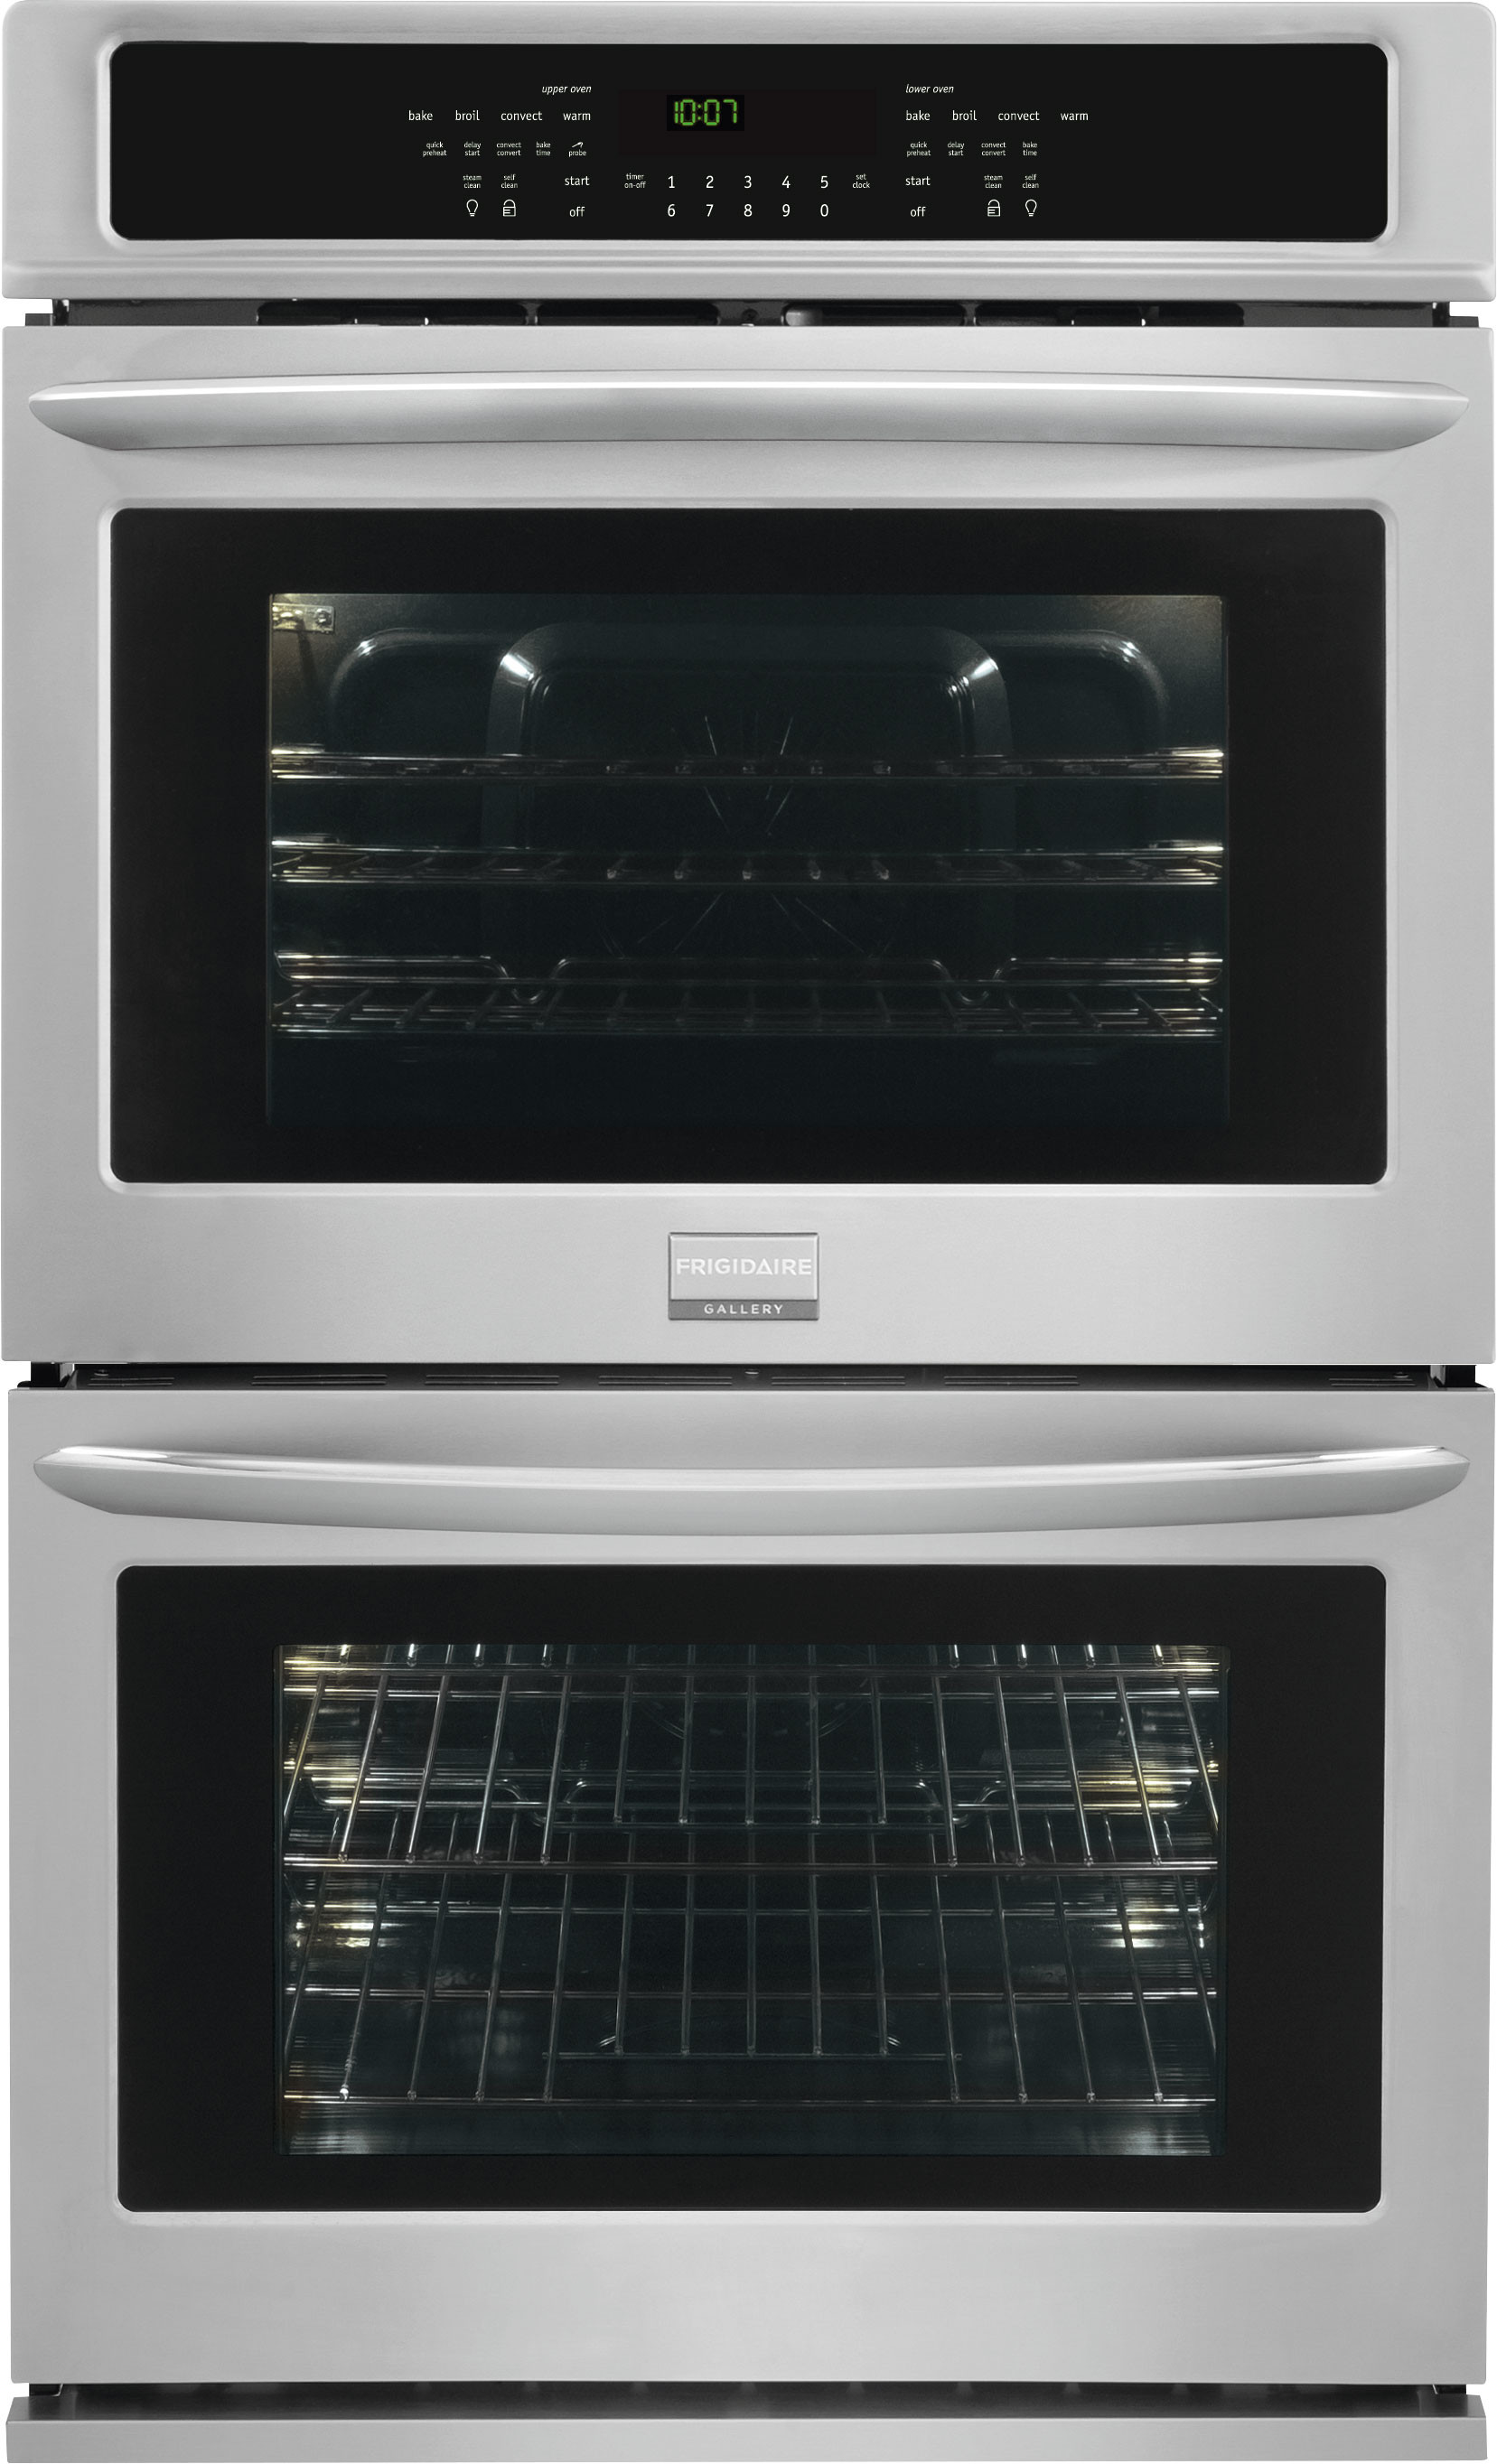 hight resolution of frigidaire gallery series fget2765pf 27 inch double electric wall oven